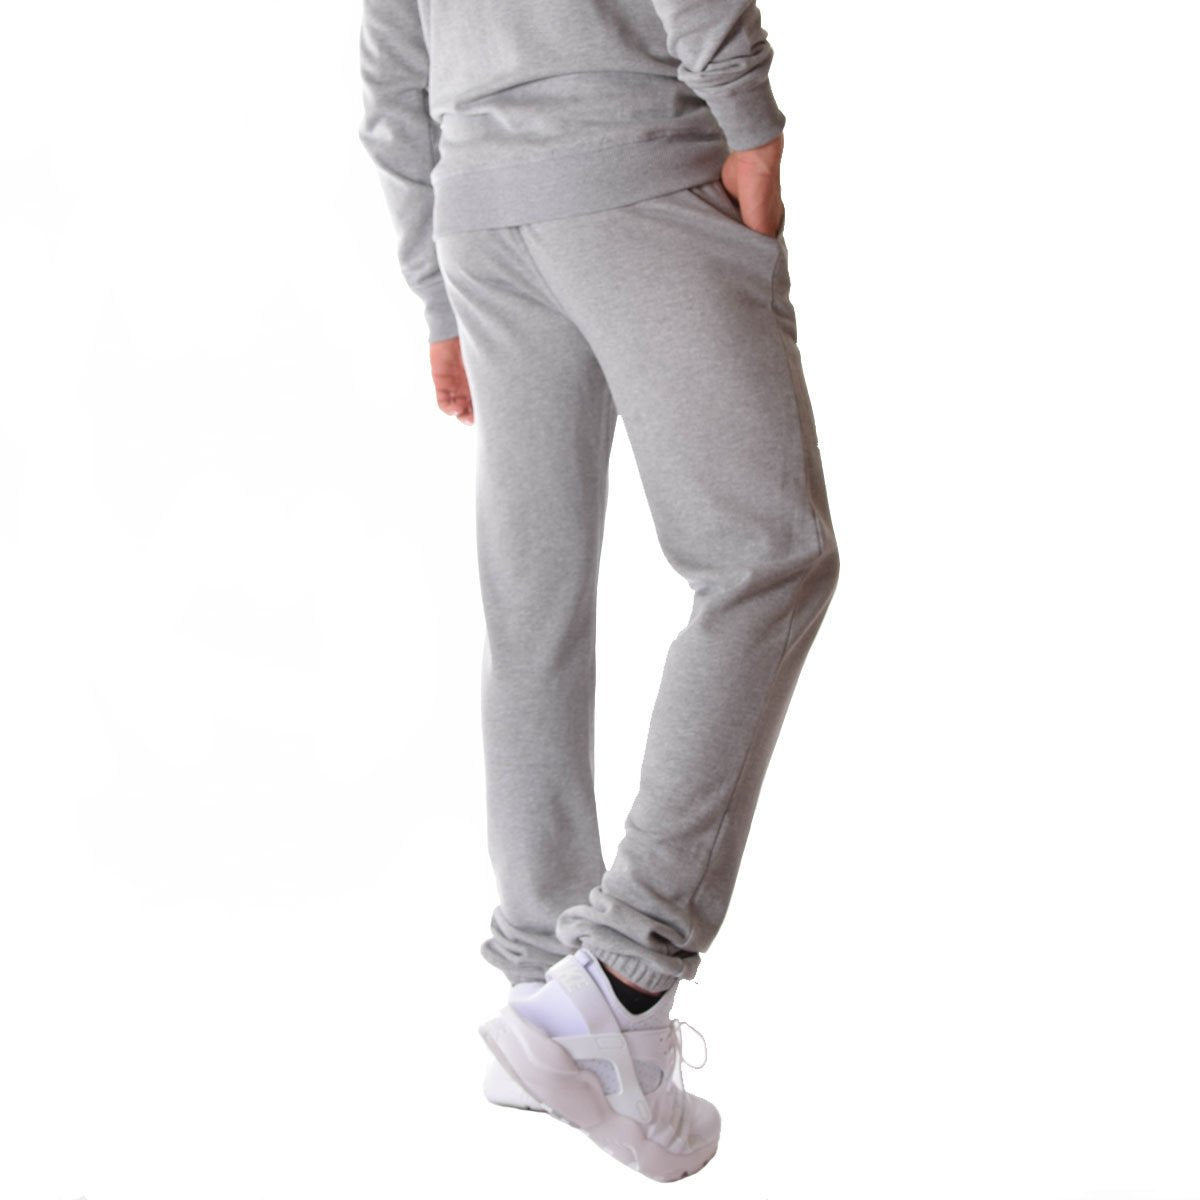 numerousinvariety search for clearance coupon codes Men's Tall French Terry Sweatpants in Grey Mix -